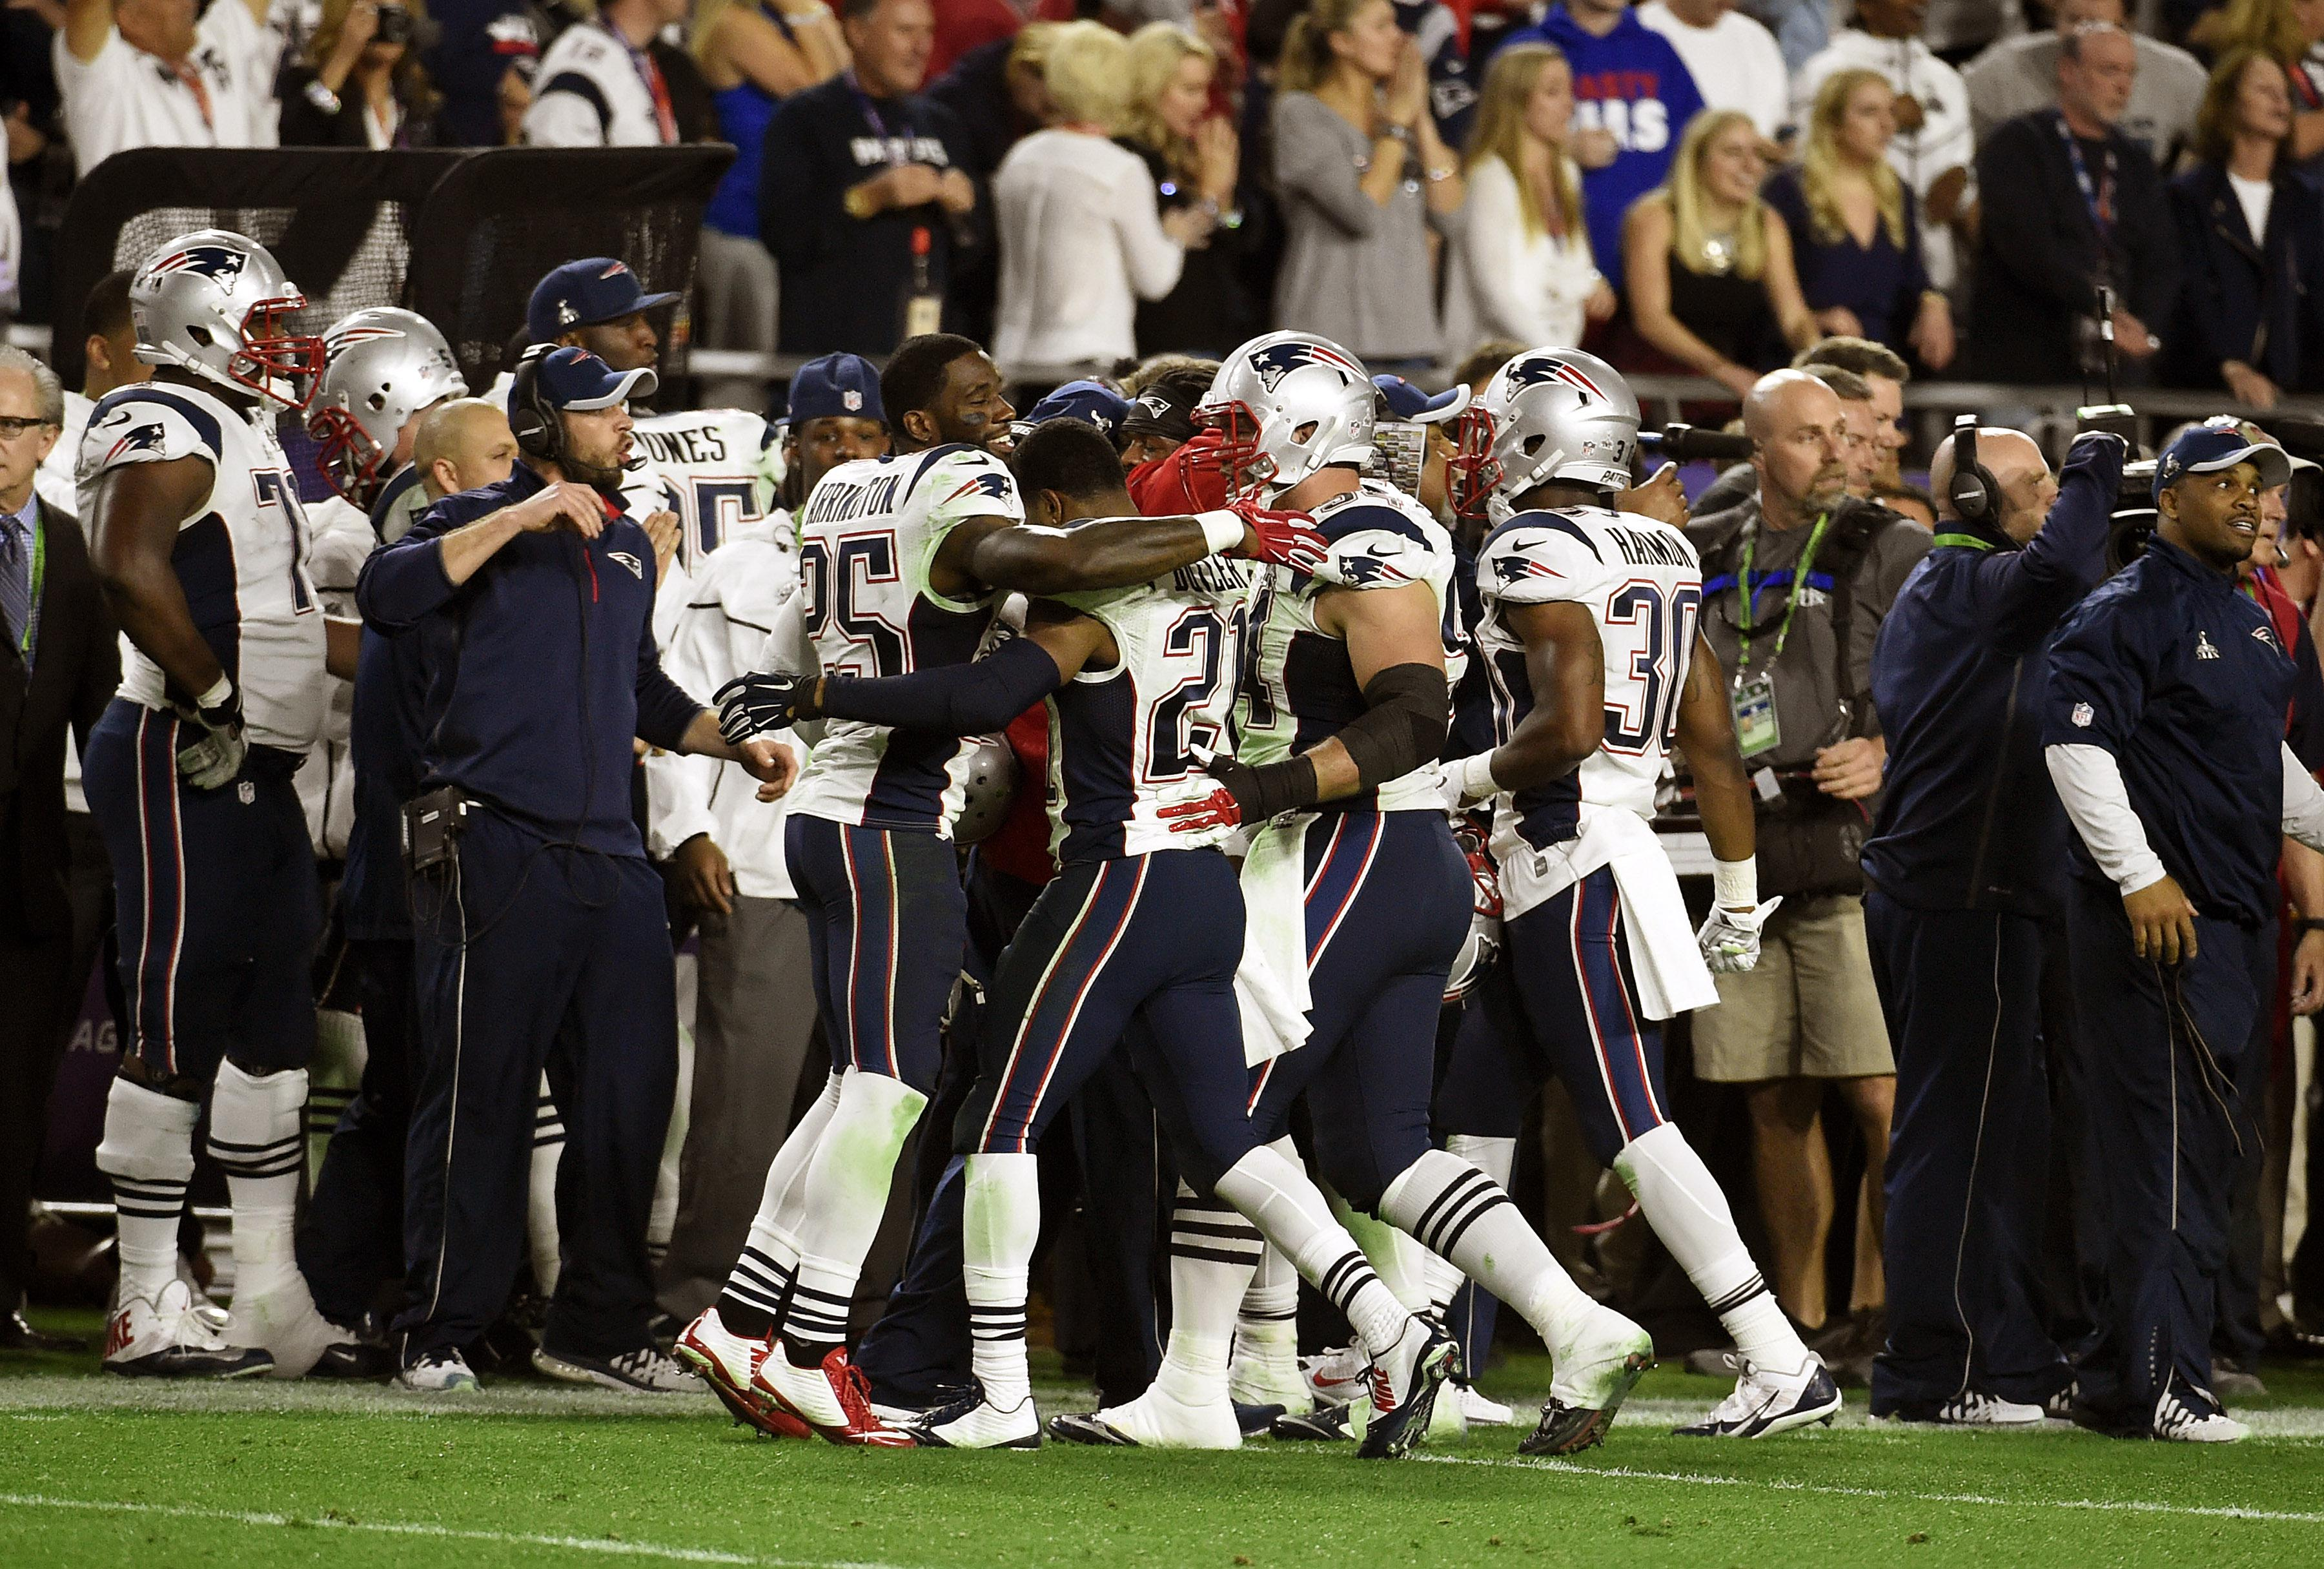 Butler is congratulated by his team-mates after his interception in Super Bowl 49